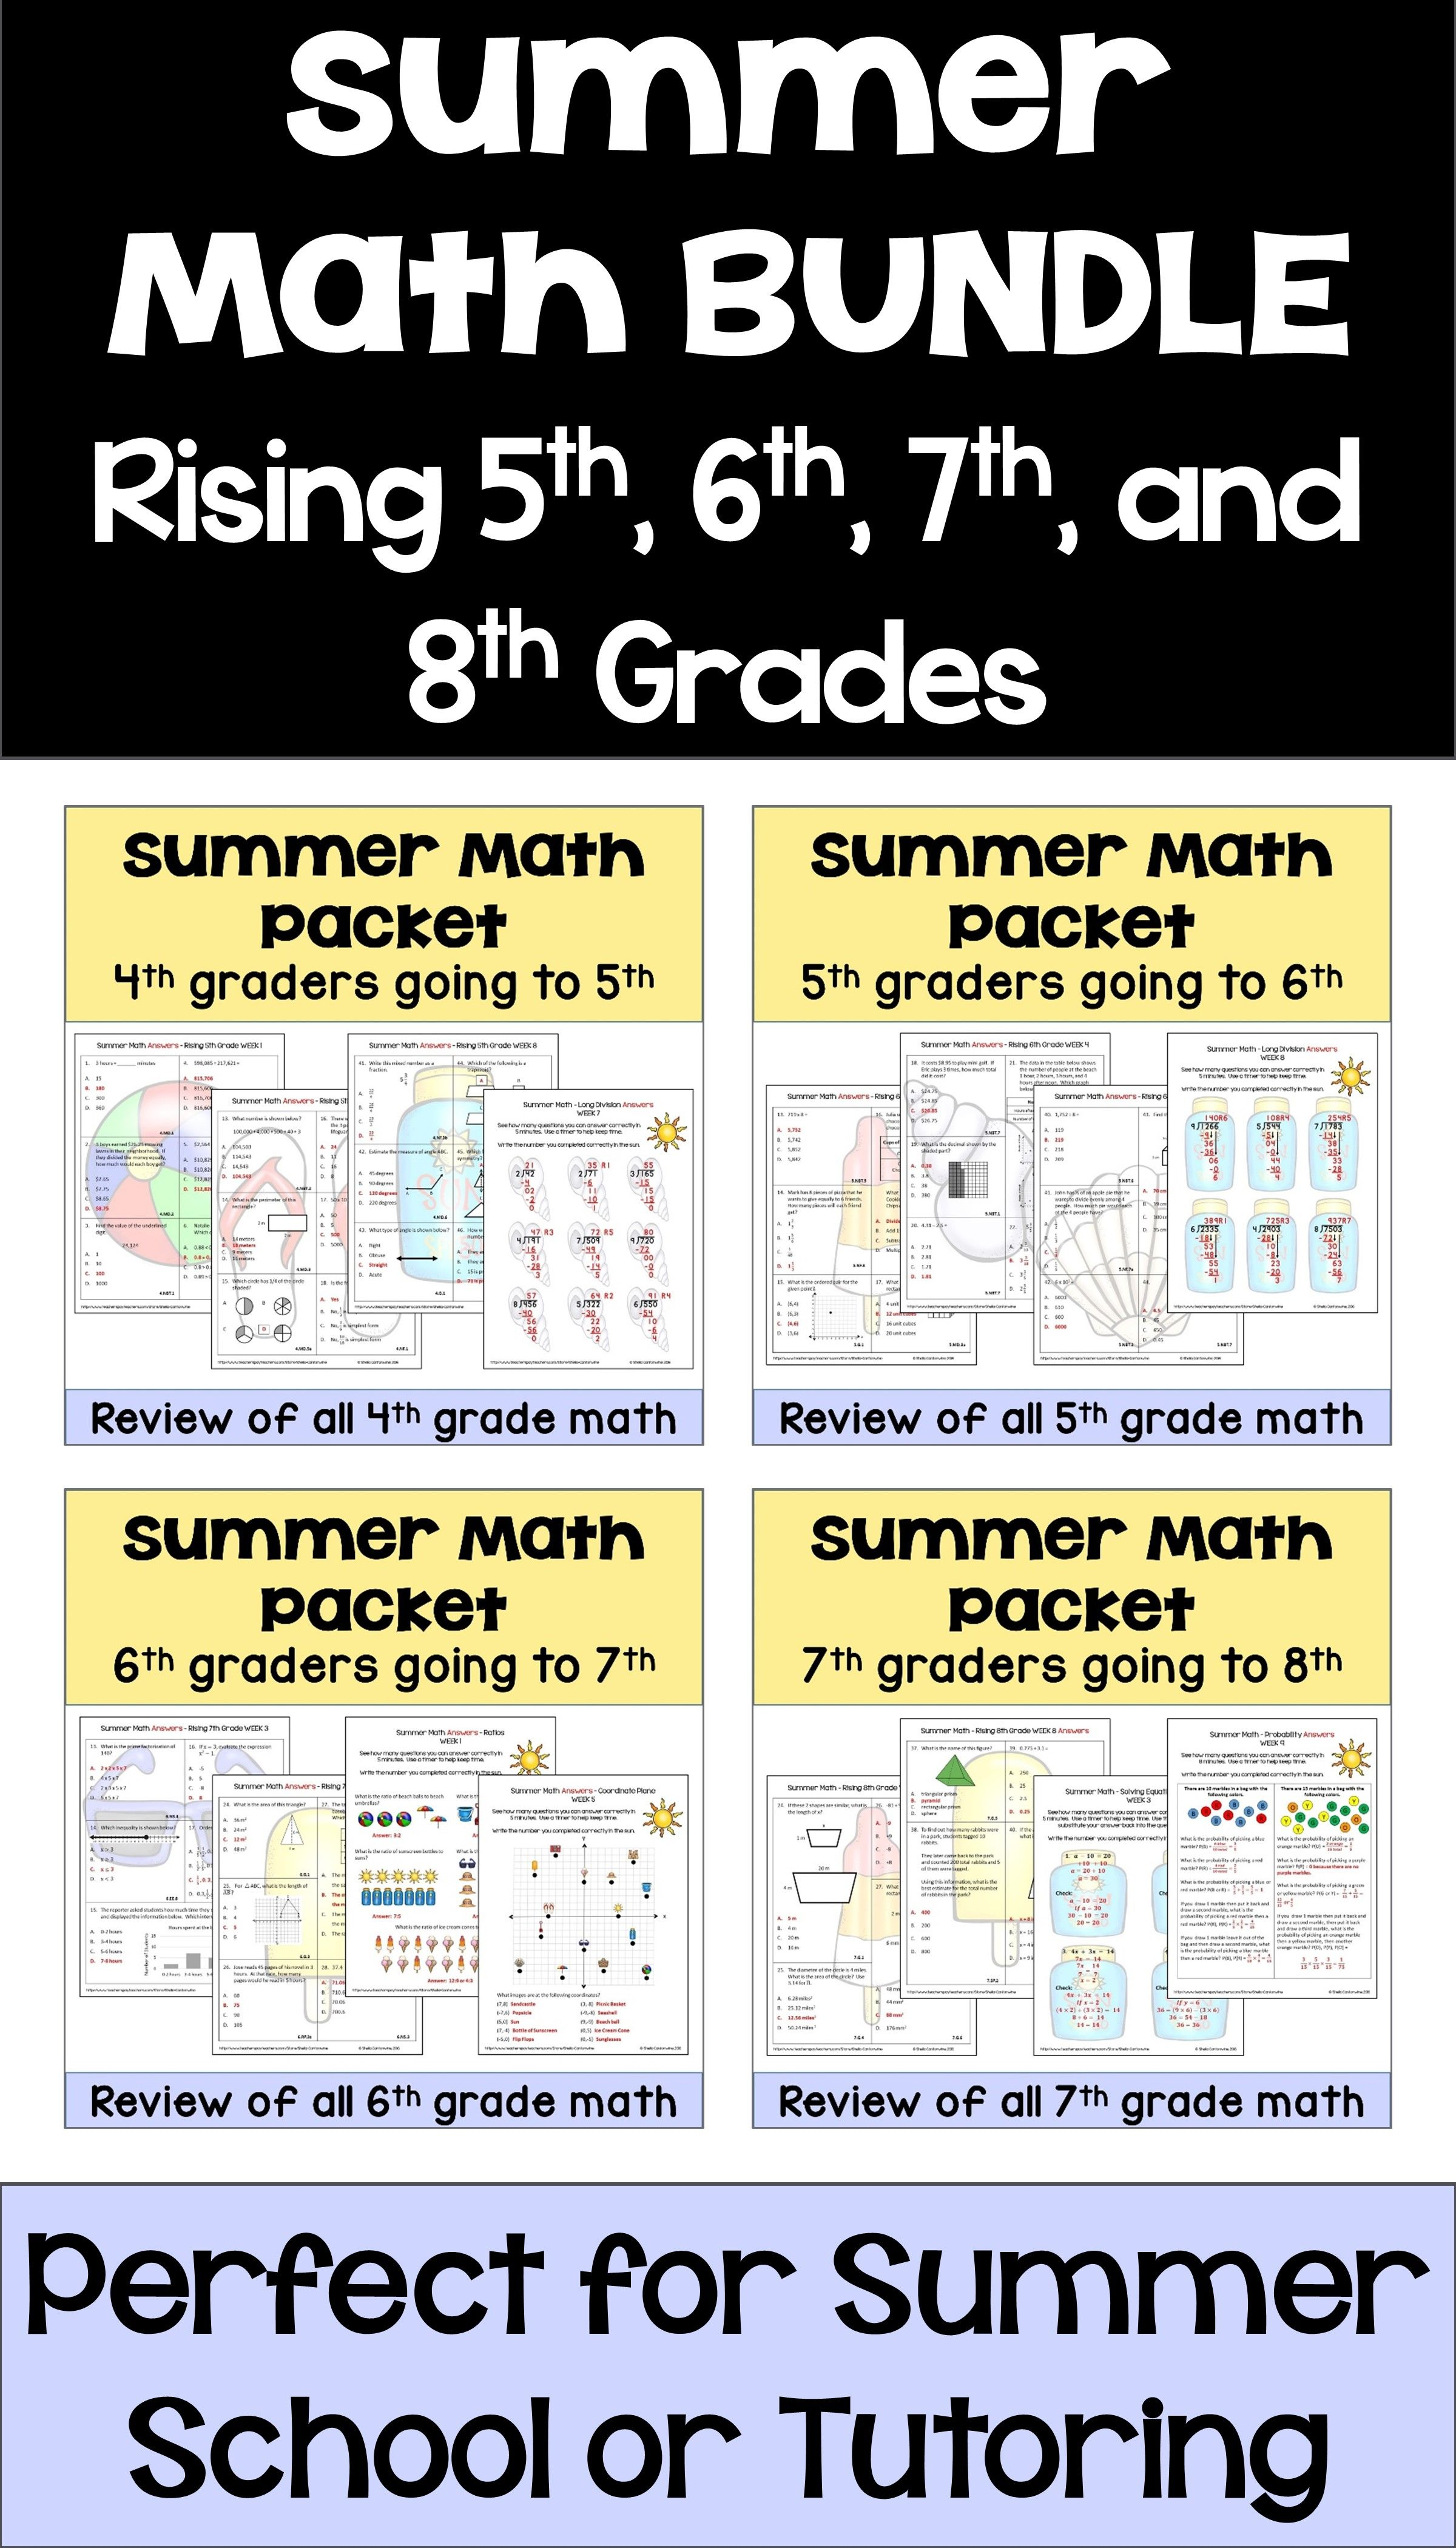 Summer Math Packet Bundle For Rising 4th 5th 6th 7th And 8th